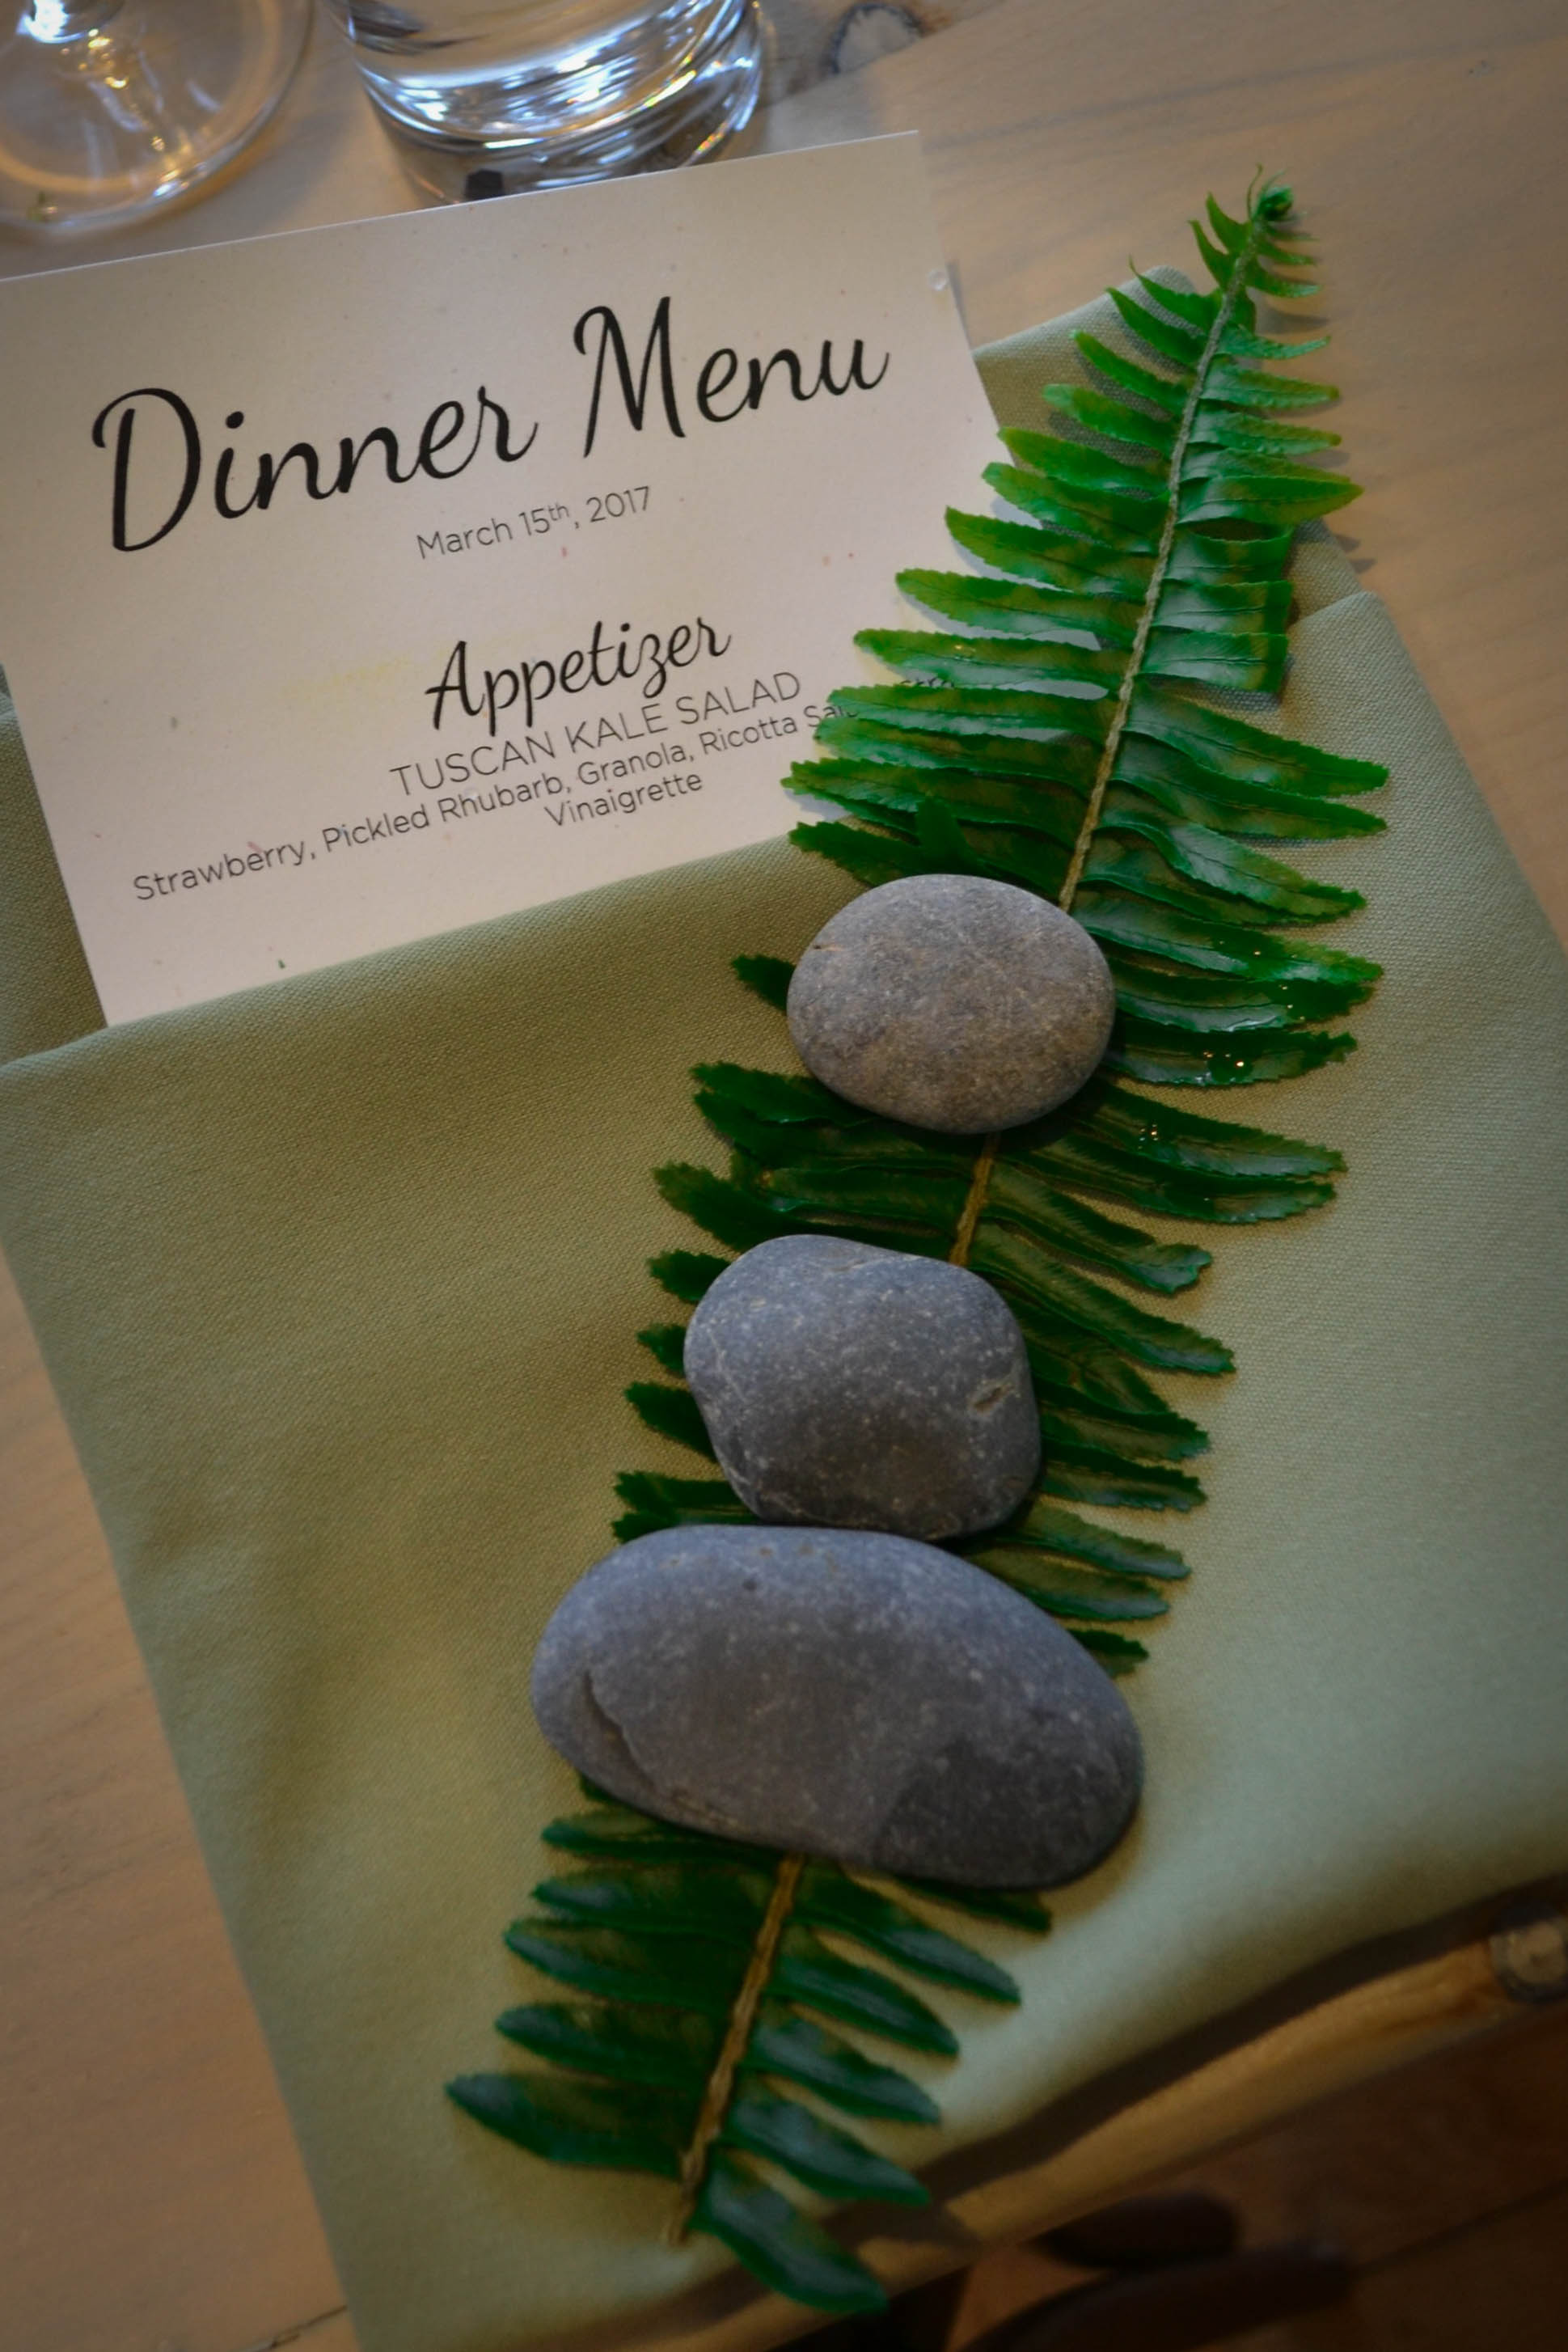 Three meditation stones and a single fern sprig were placed at each table setting.